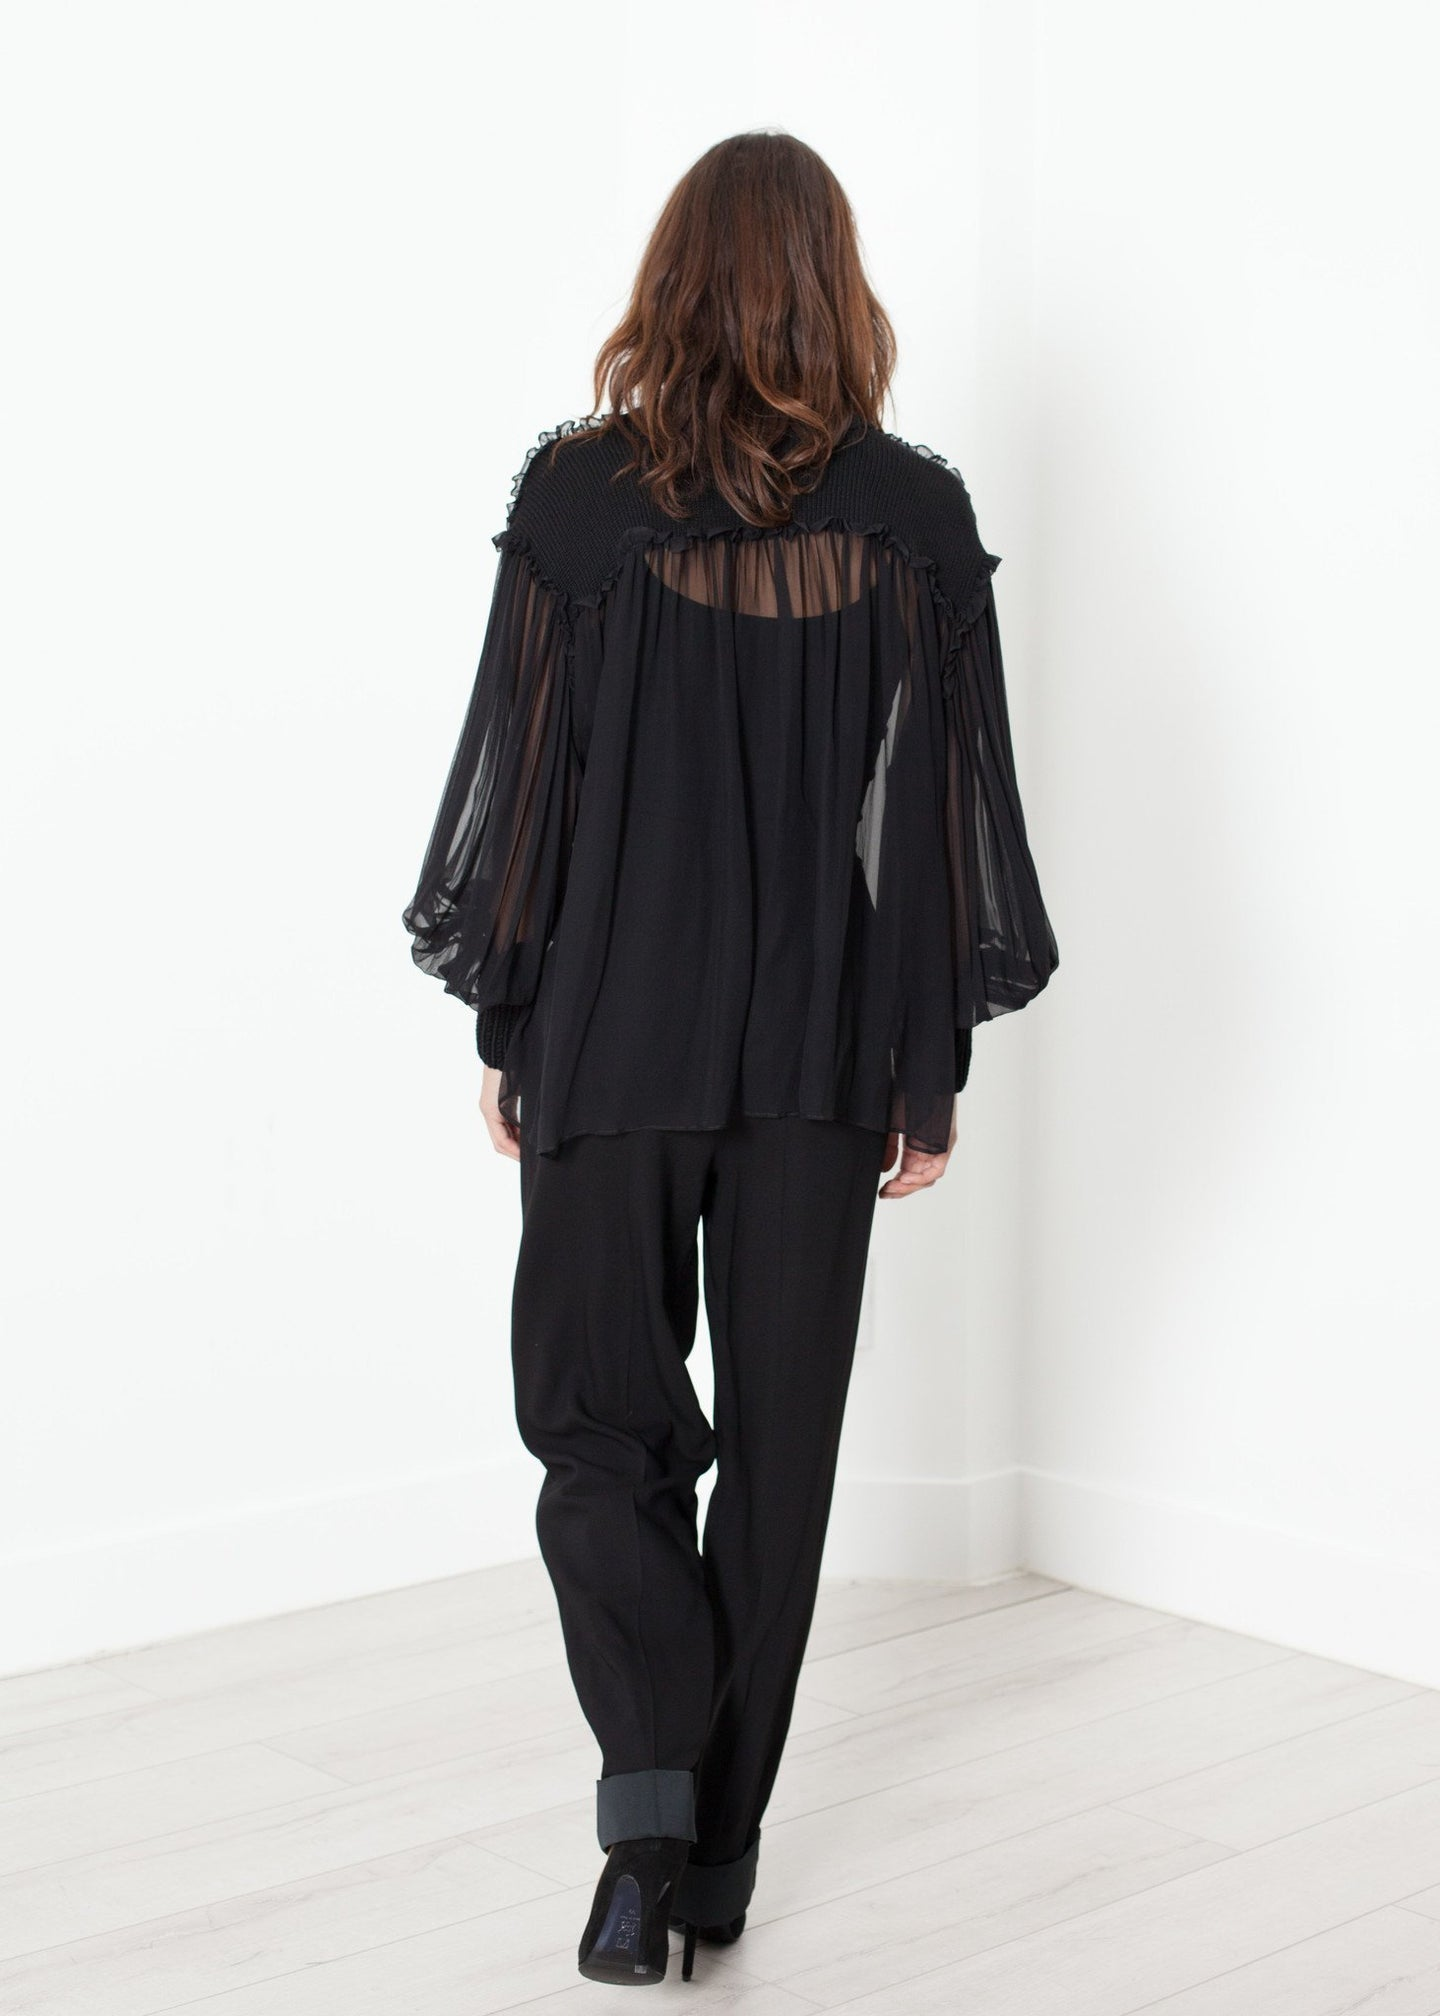 Poet Silk Sweater in Black